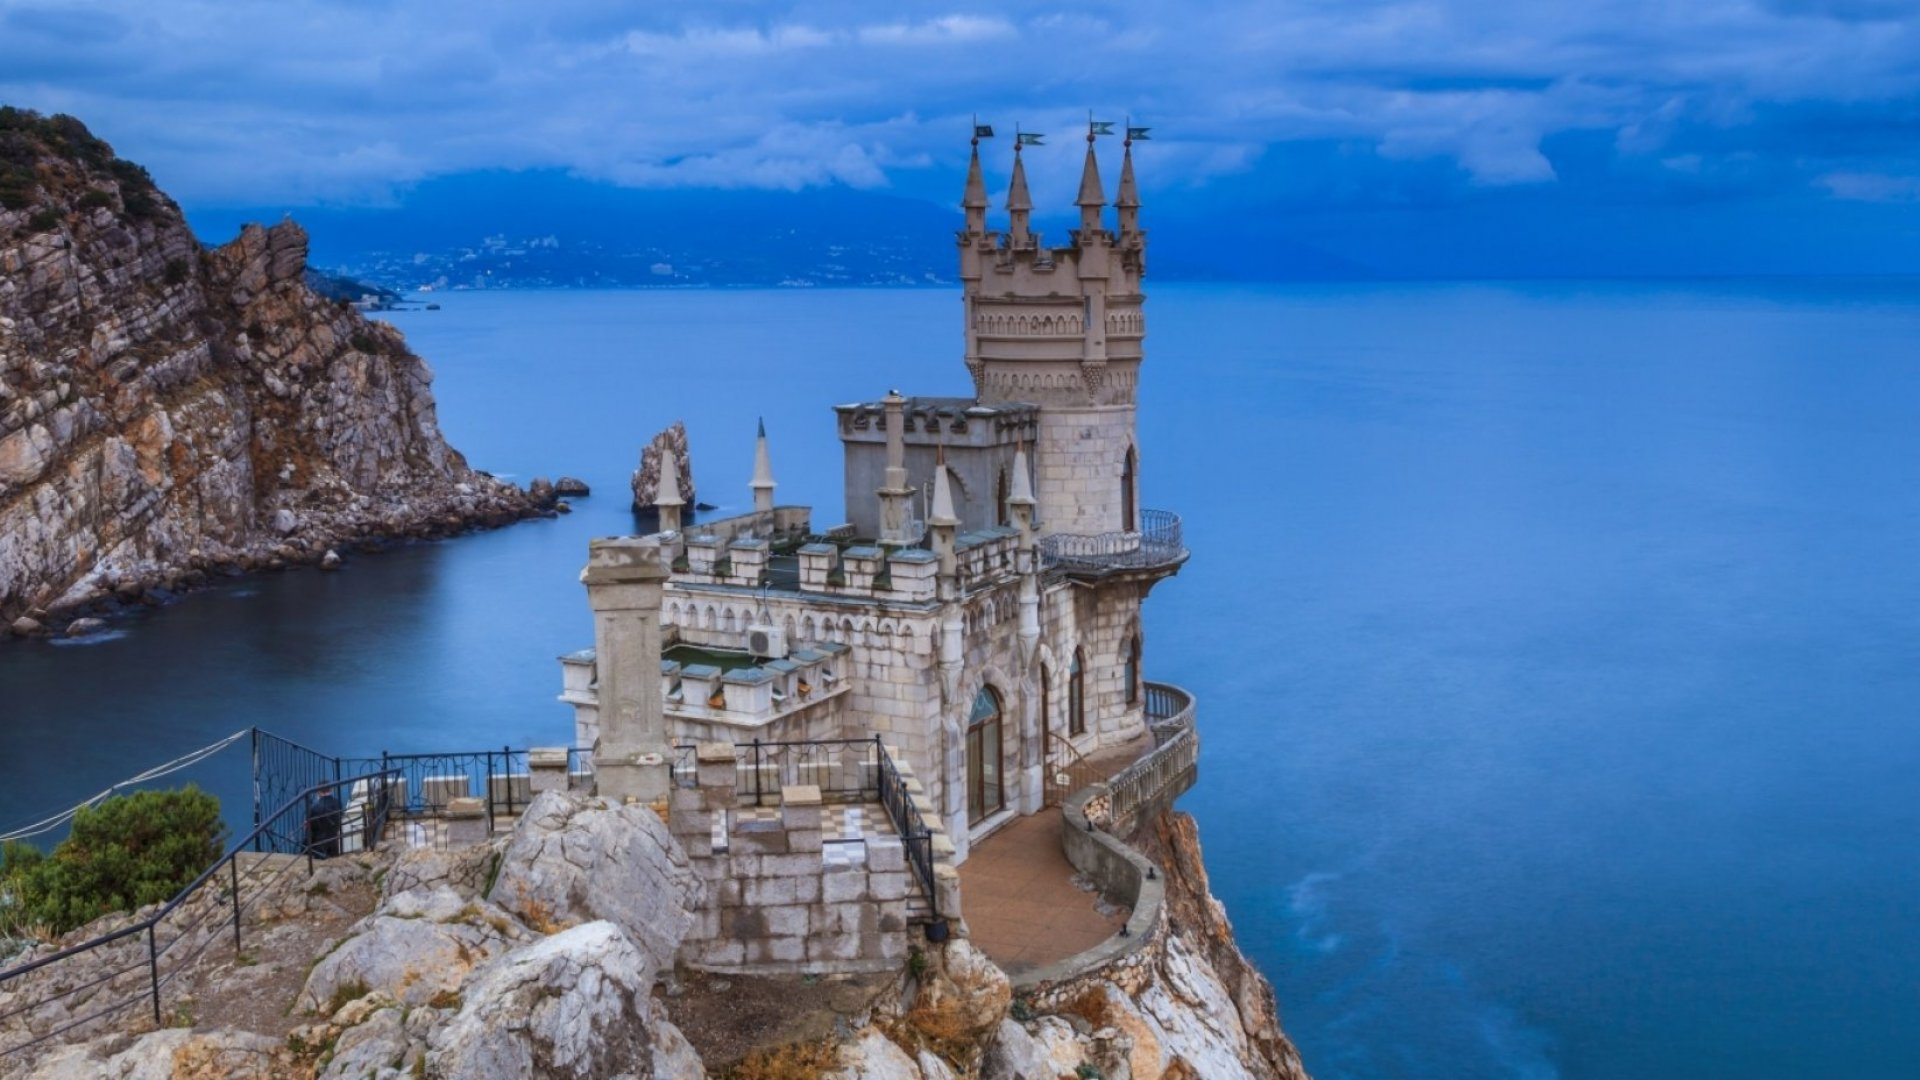 Swallow's Nest Castle located in the Crimean Peninsula.